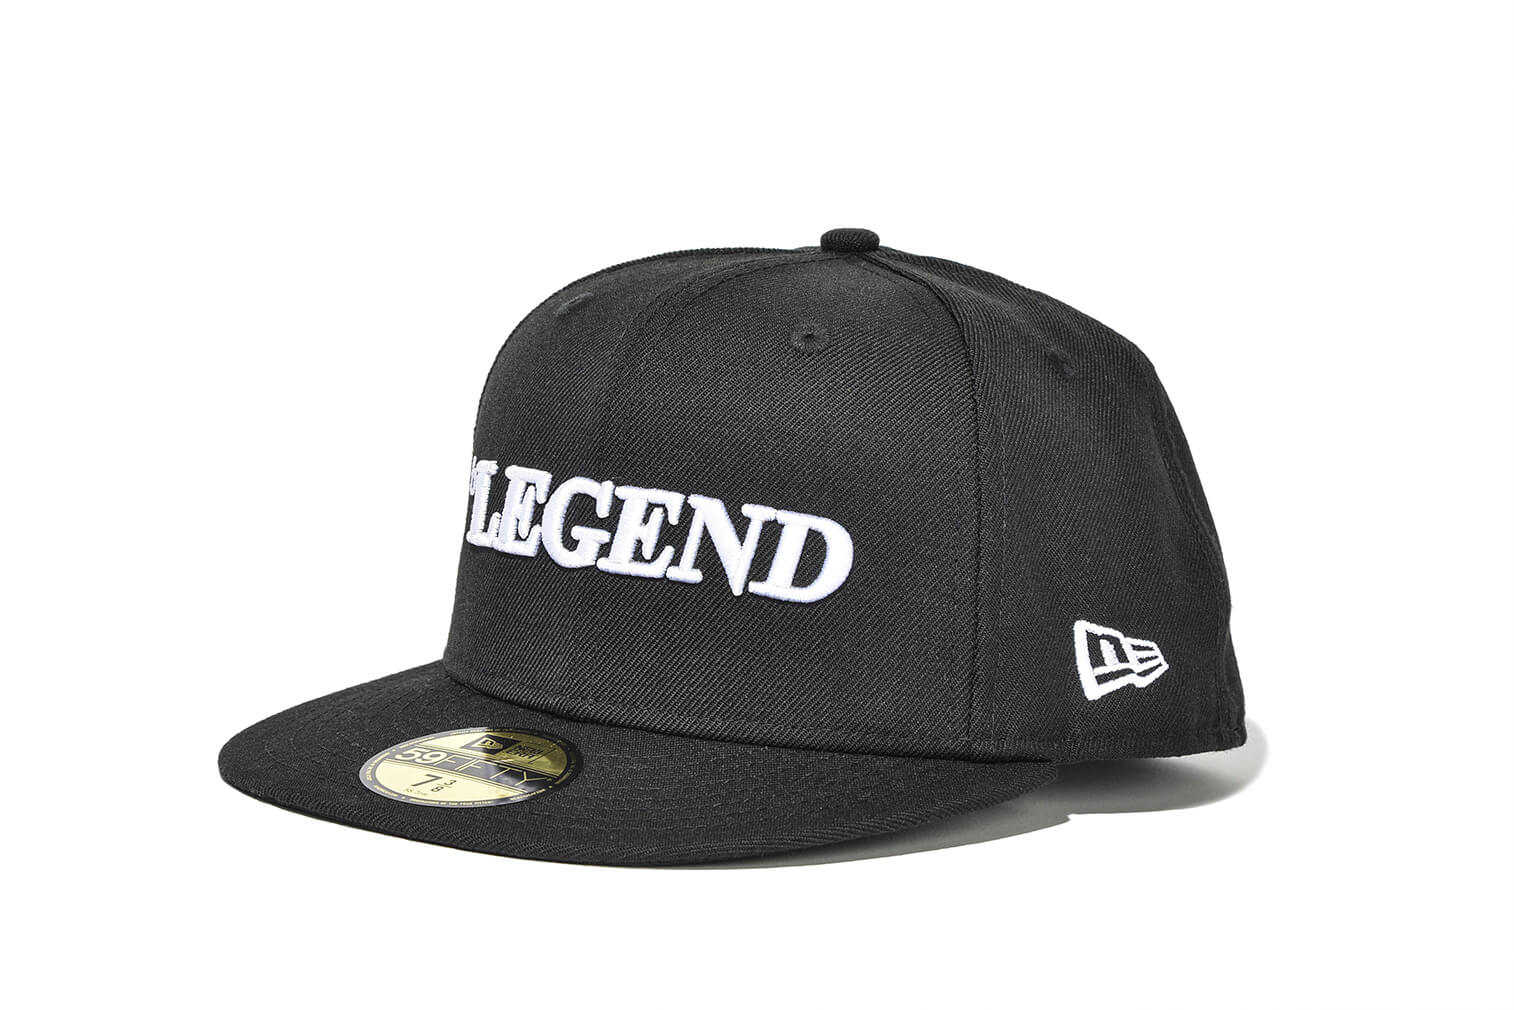 5950 BE LEGEND NEW ERA CAP